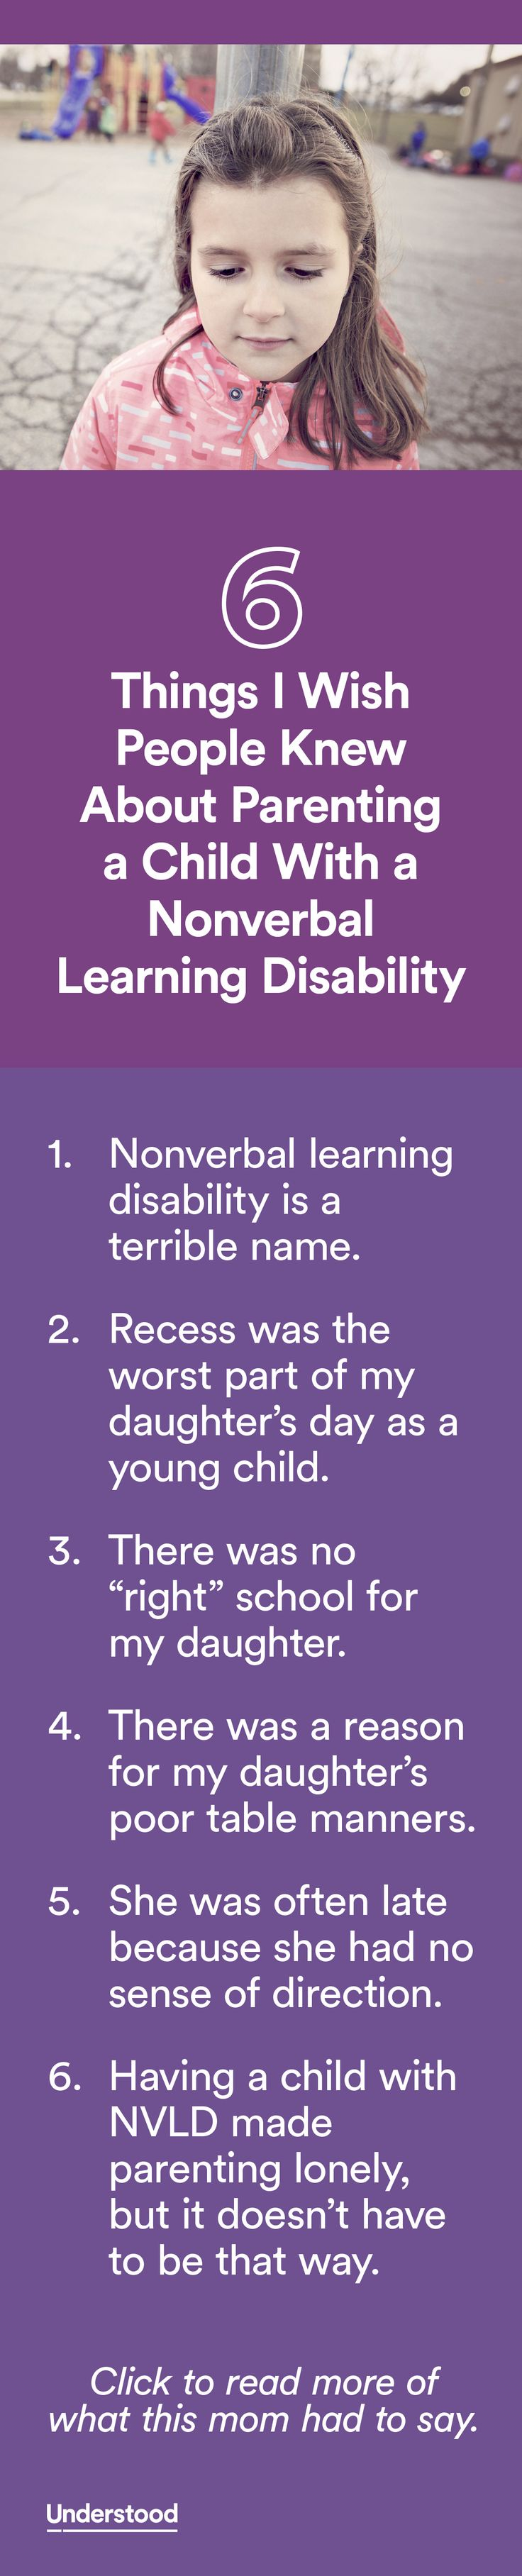 """Before my daughter was diagnosed at age 5 with a nonverbal learning disability (NVLD), I already knew she was different."""